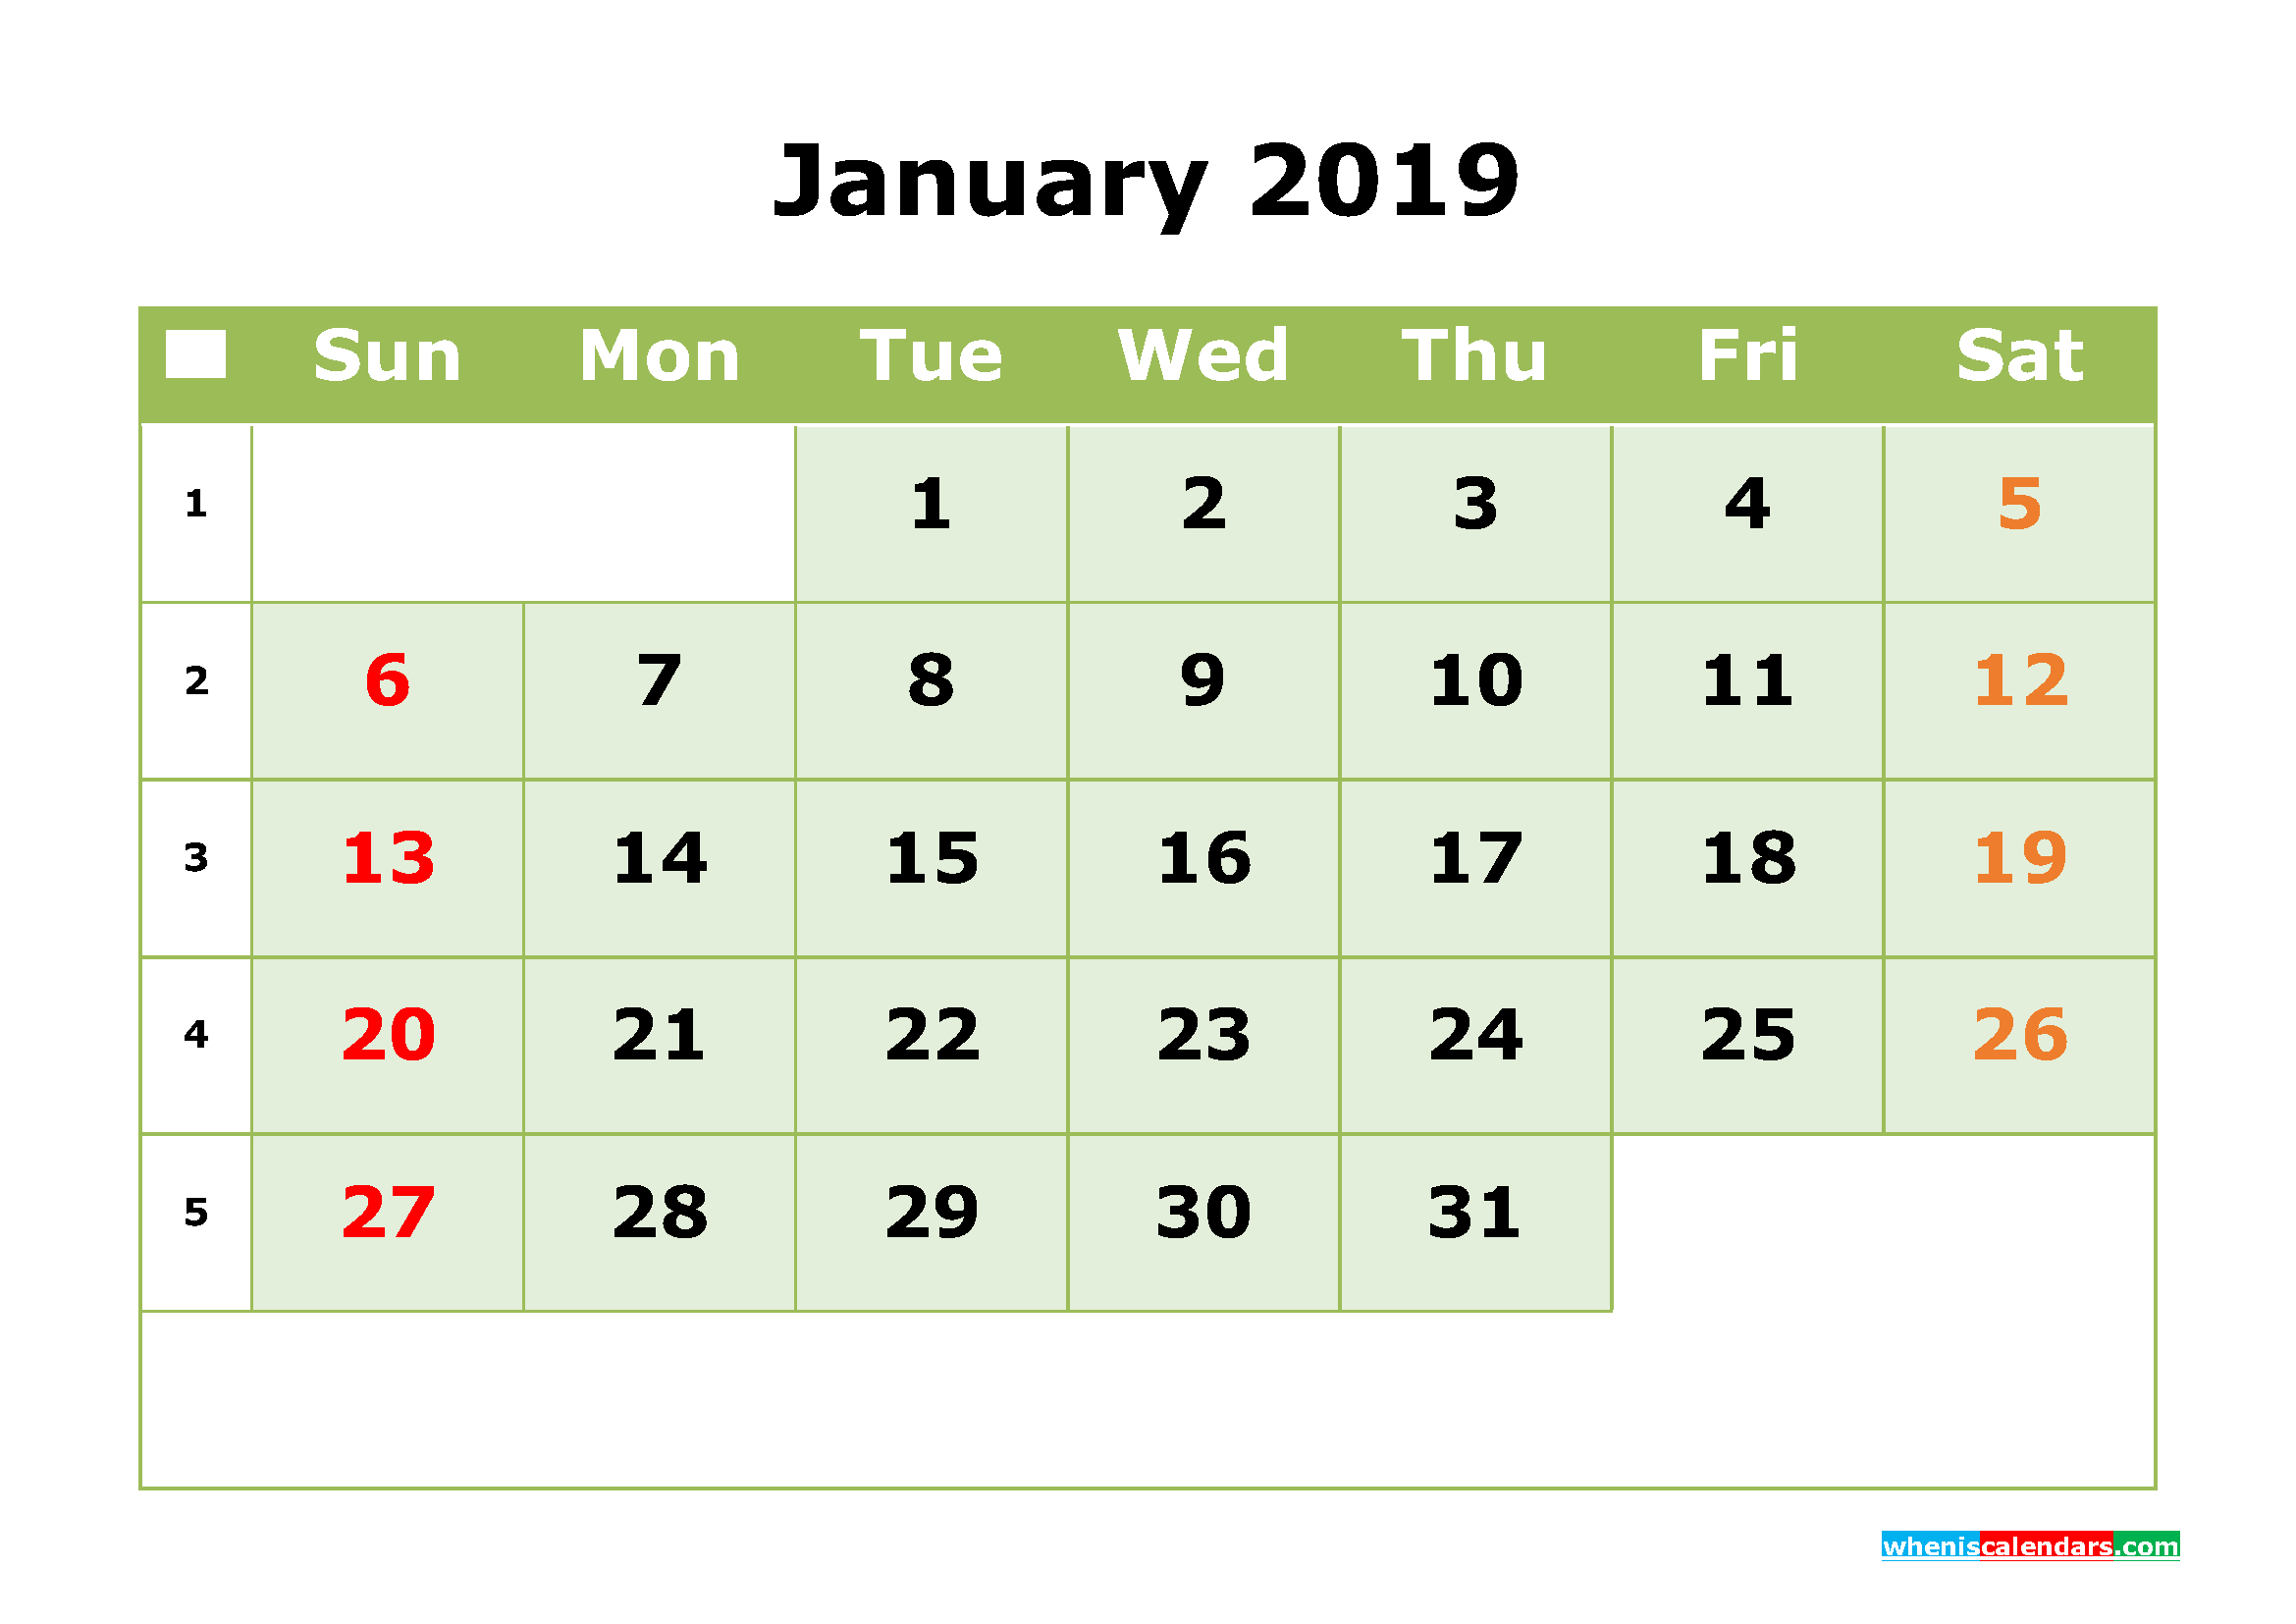 January 2019 printable calendar month by month calendar template january 2019 printable calendar month by month calendar template maxwellsz